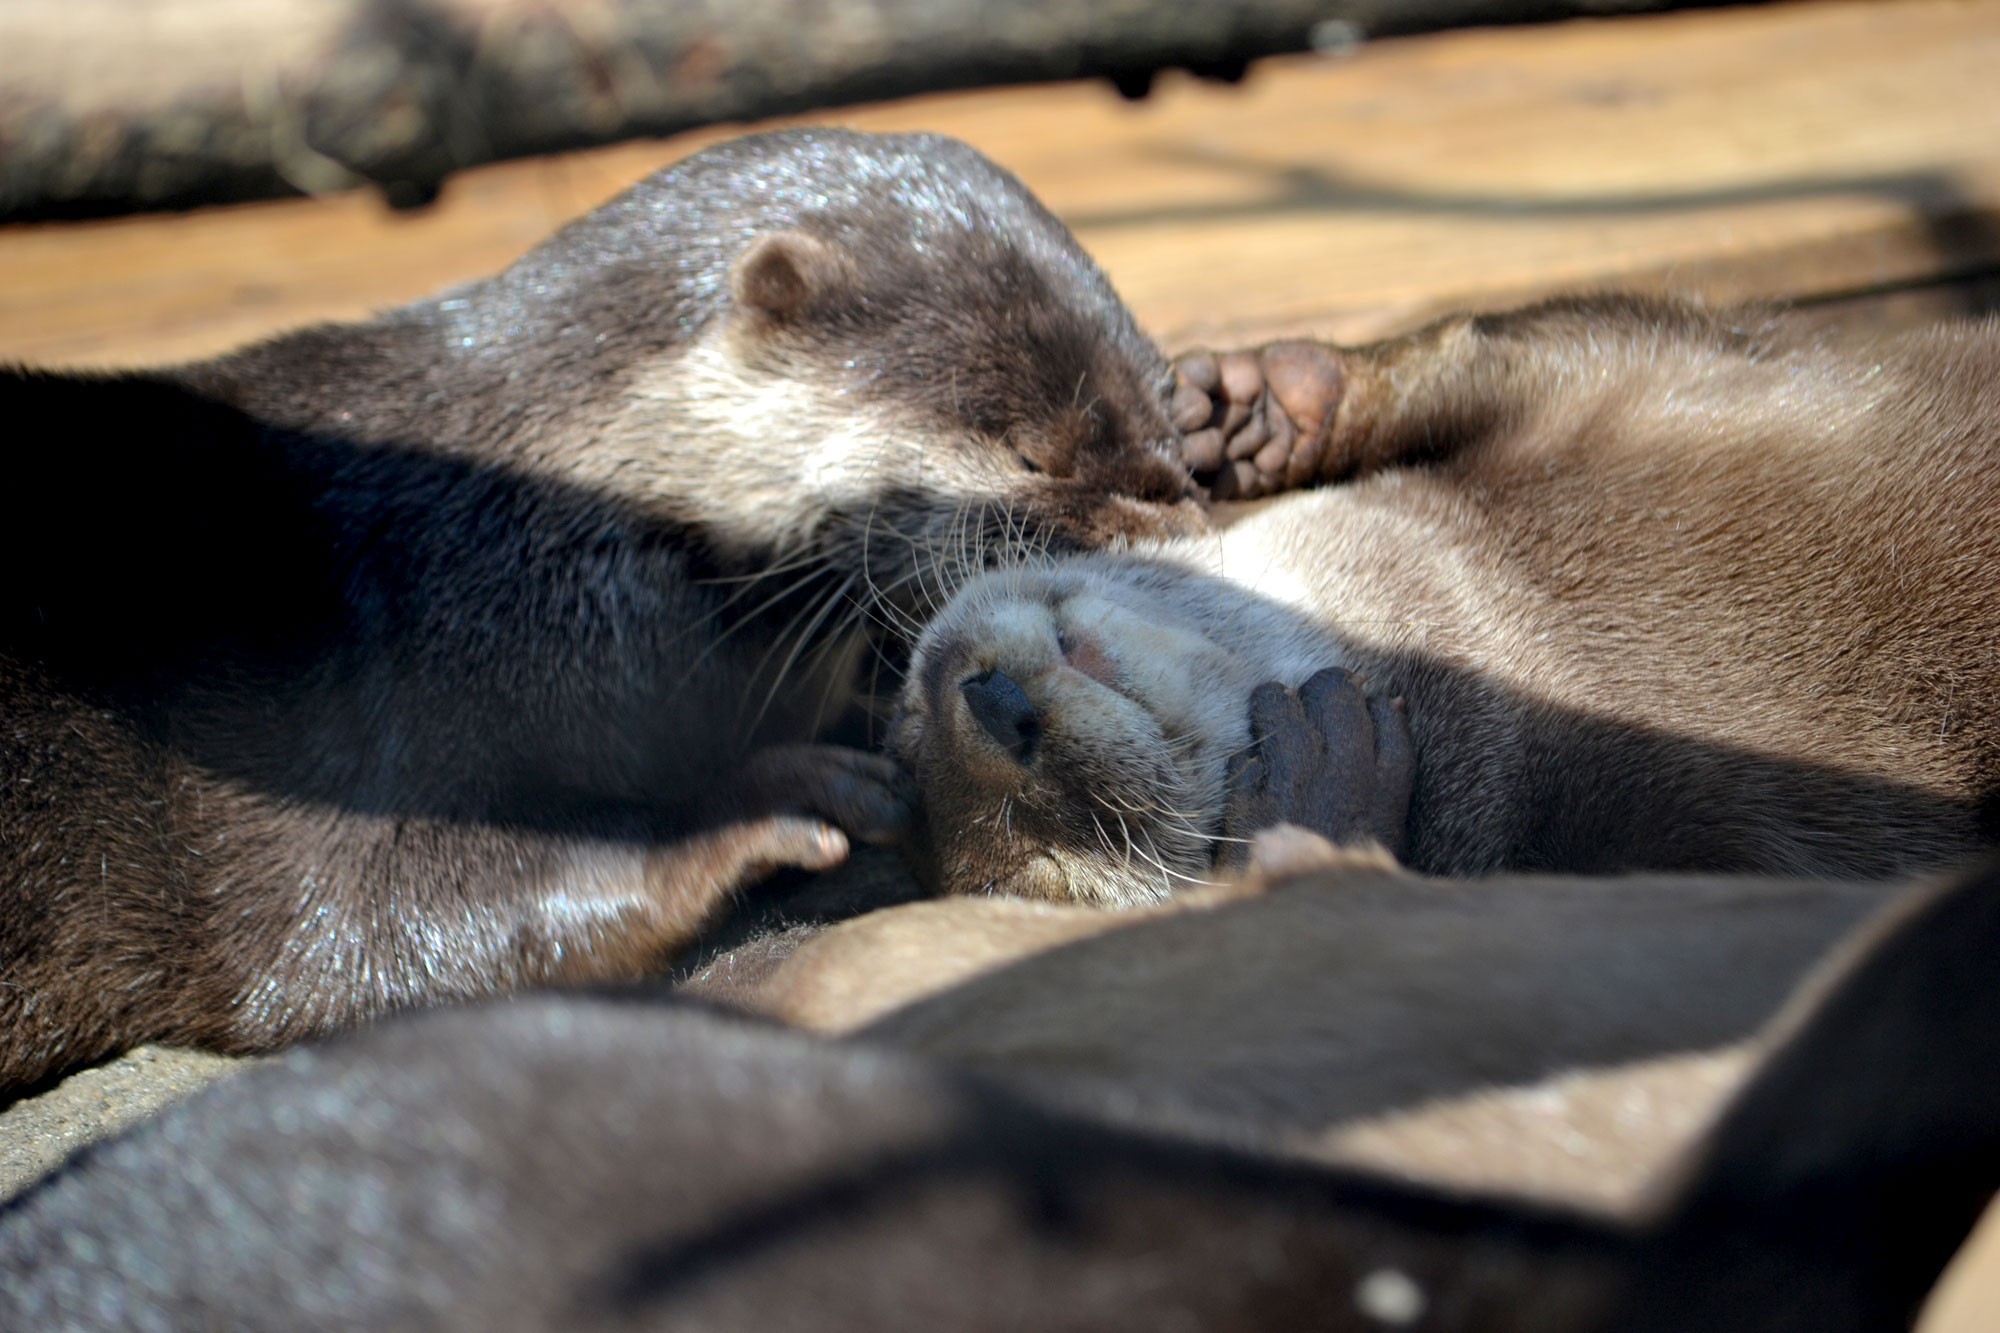 Otter Sweetly Nuzzles Her Friend